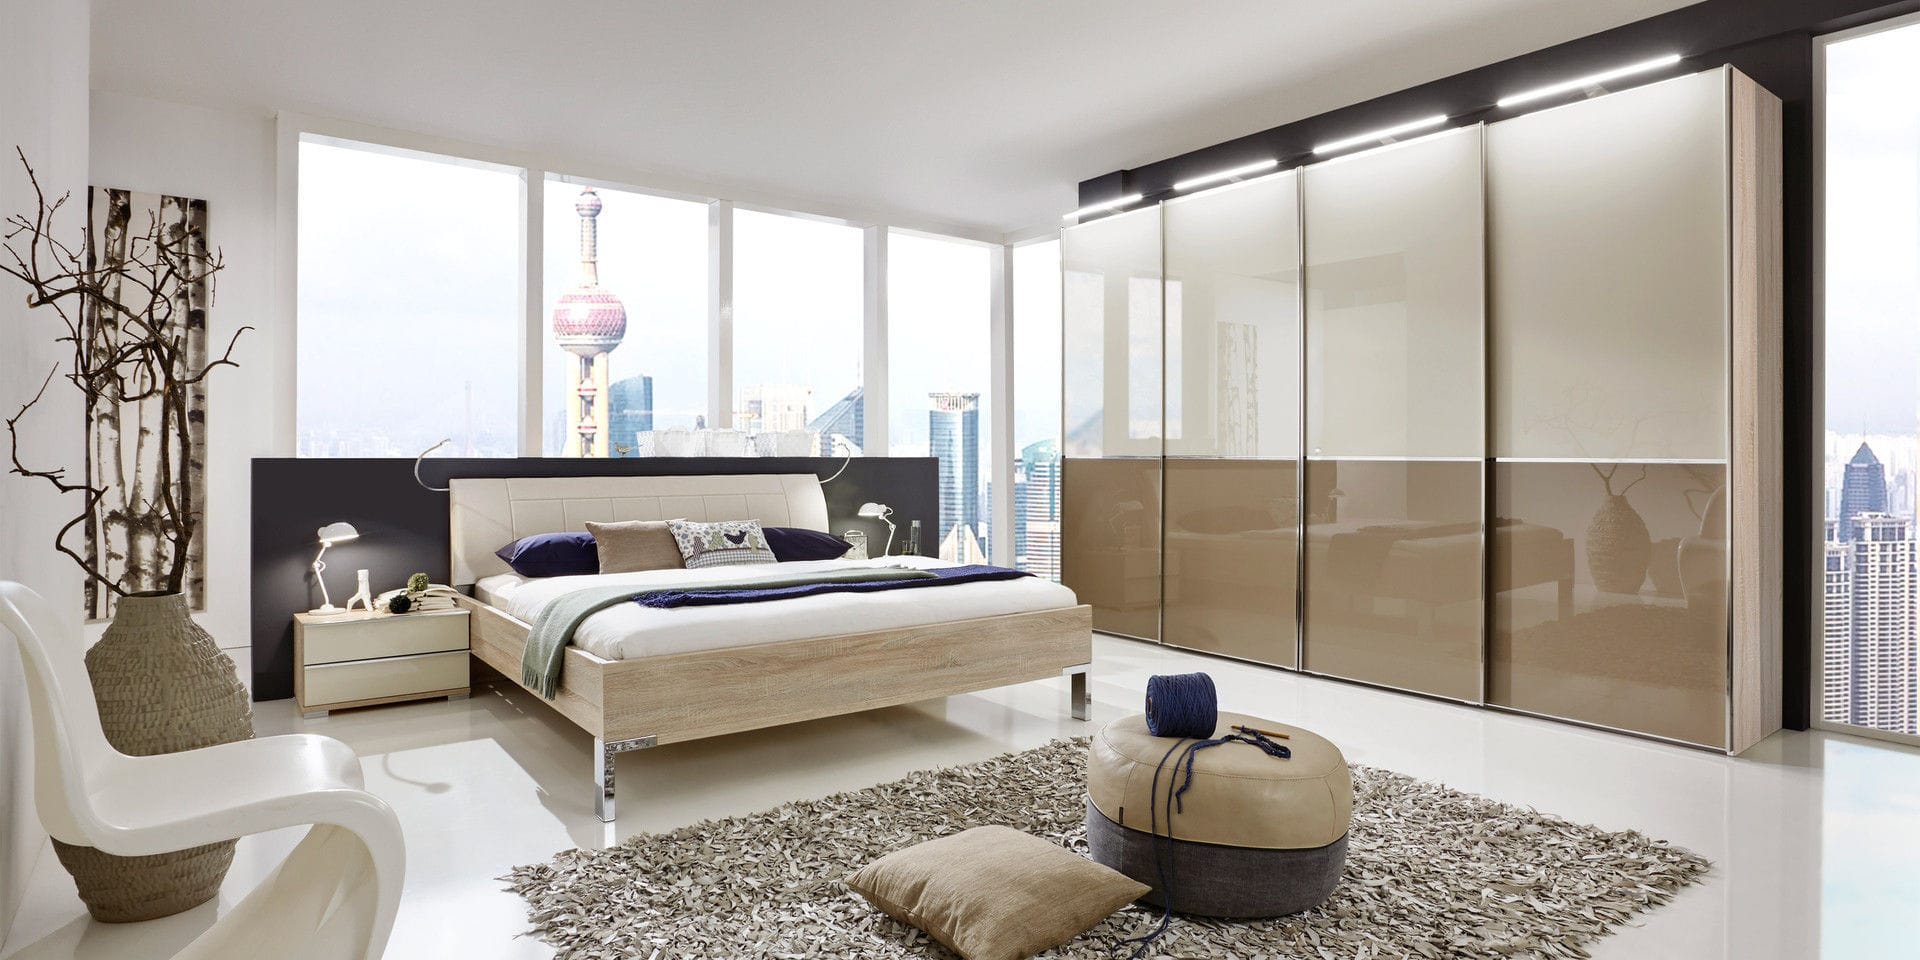 Double Bed Contemporary With Leather Headboard Wooden